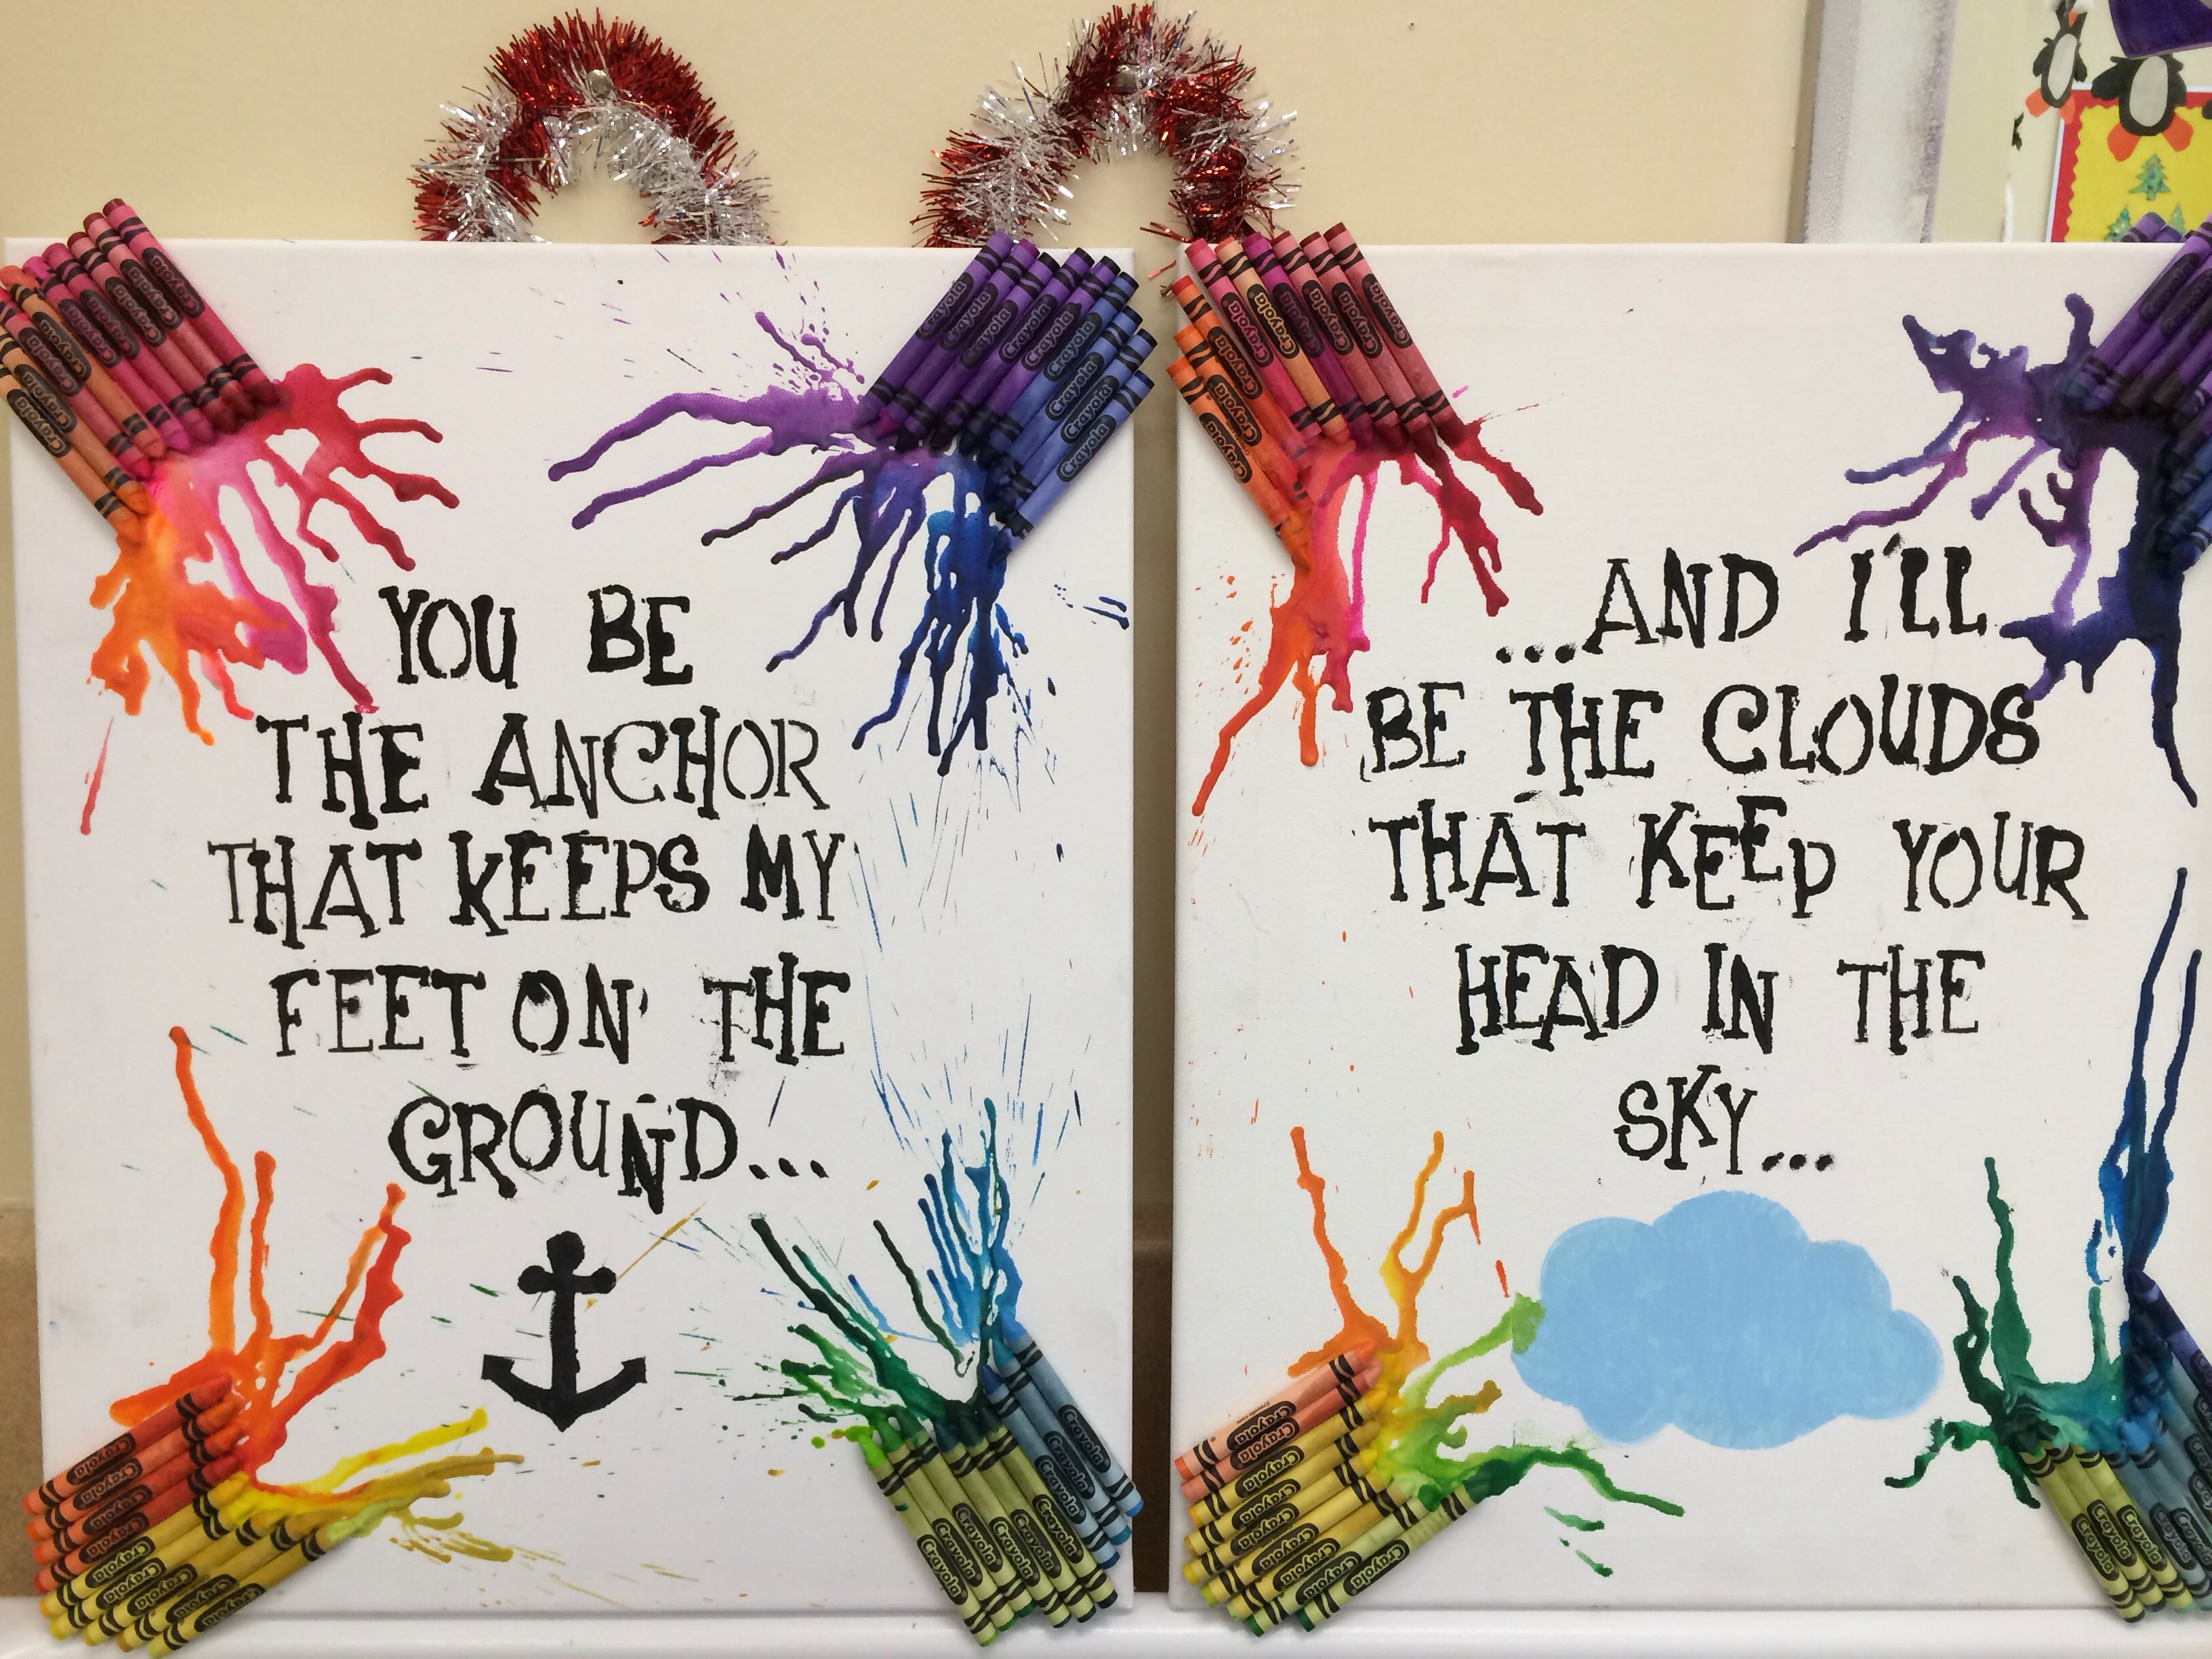 Christmas Gift For My Best Friend Saw This Quote On A Tattoo Love The Melting Crayon Effect